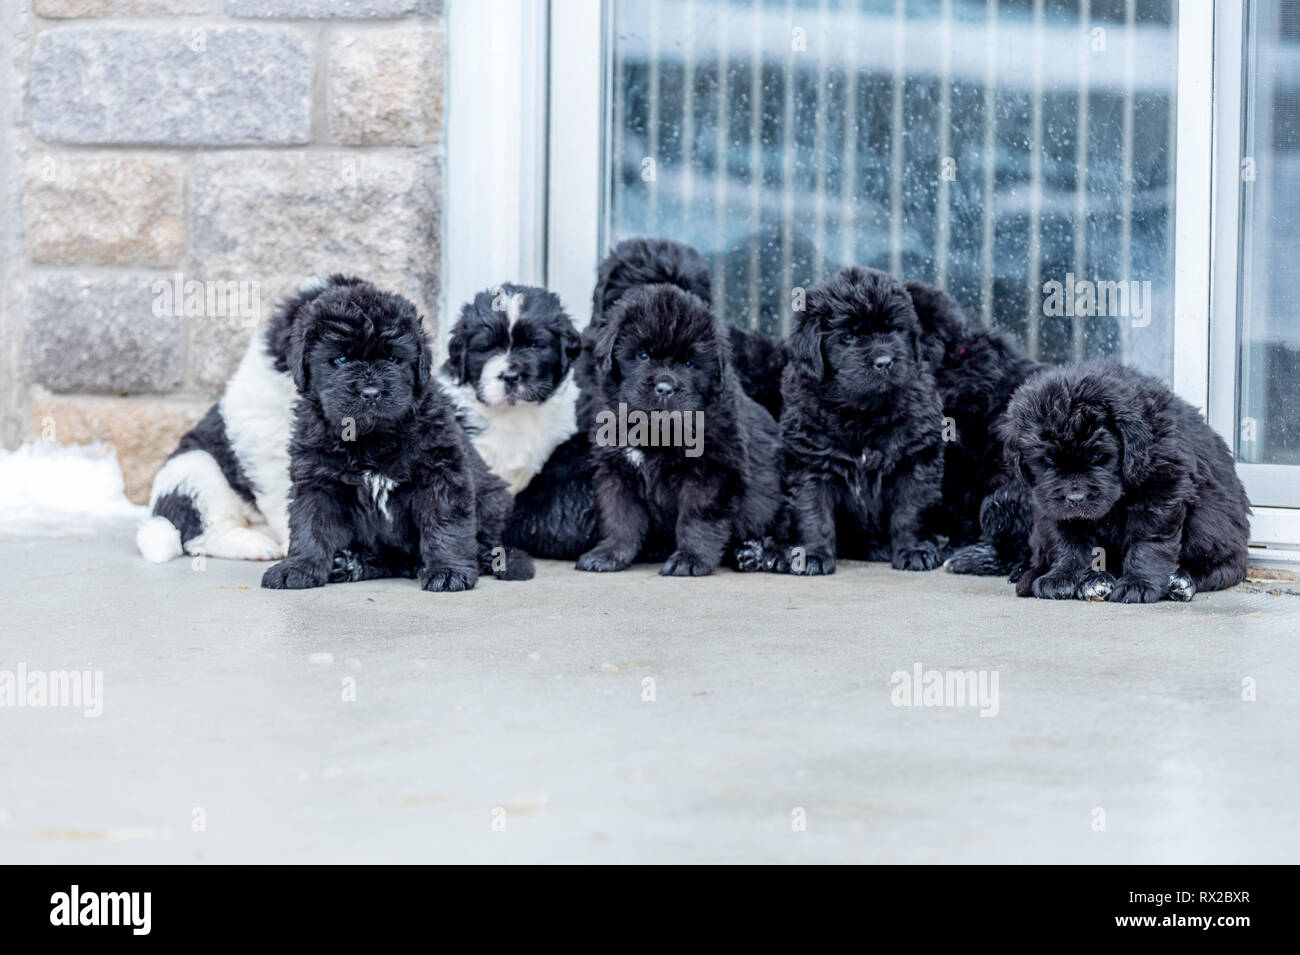 A large litter of Newfie puppies sitting in a row - Stock Image